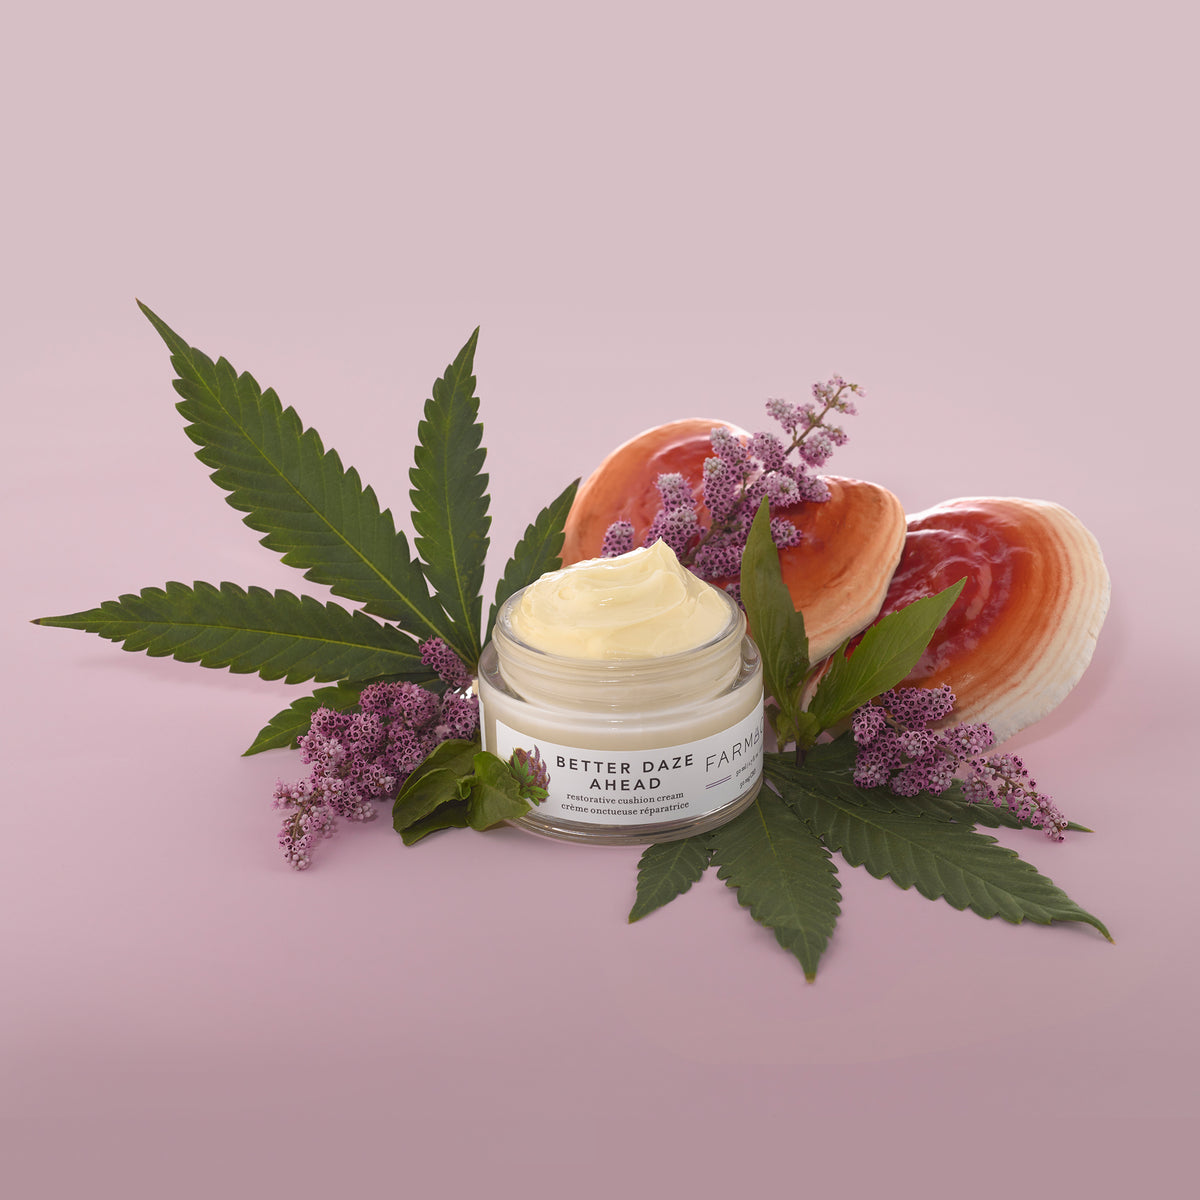 Better Daze Ahead moisturizer with hemp leaves, reishi mushrooms and holy basil